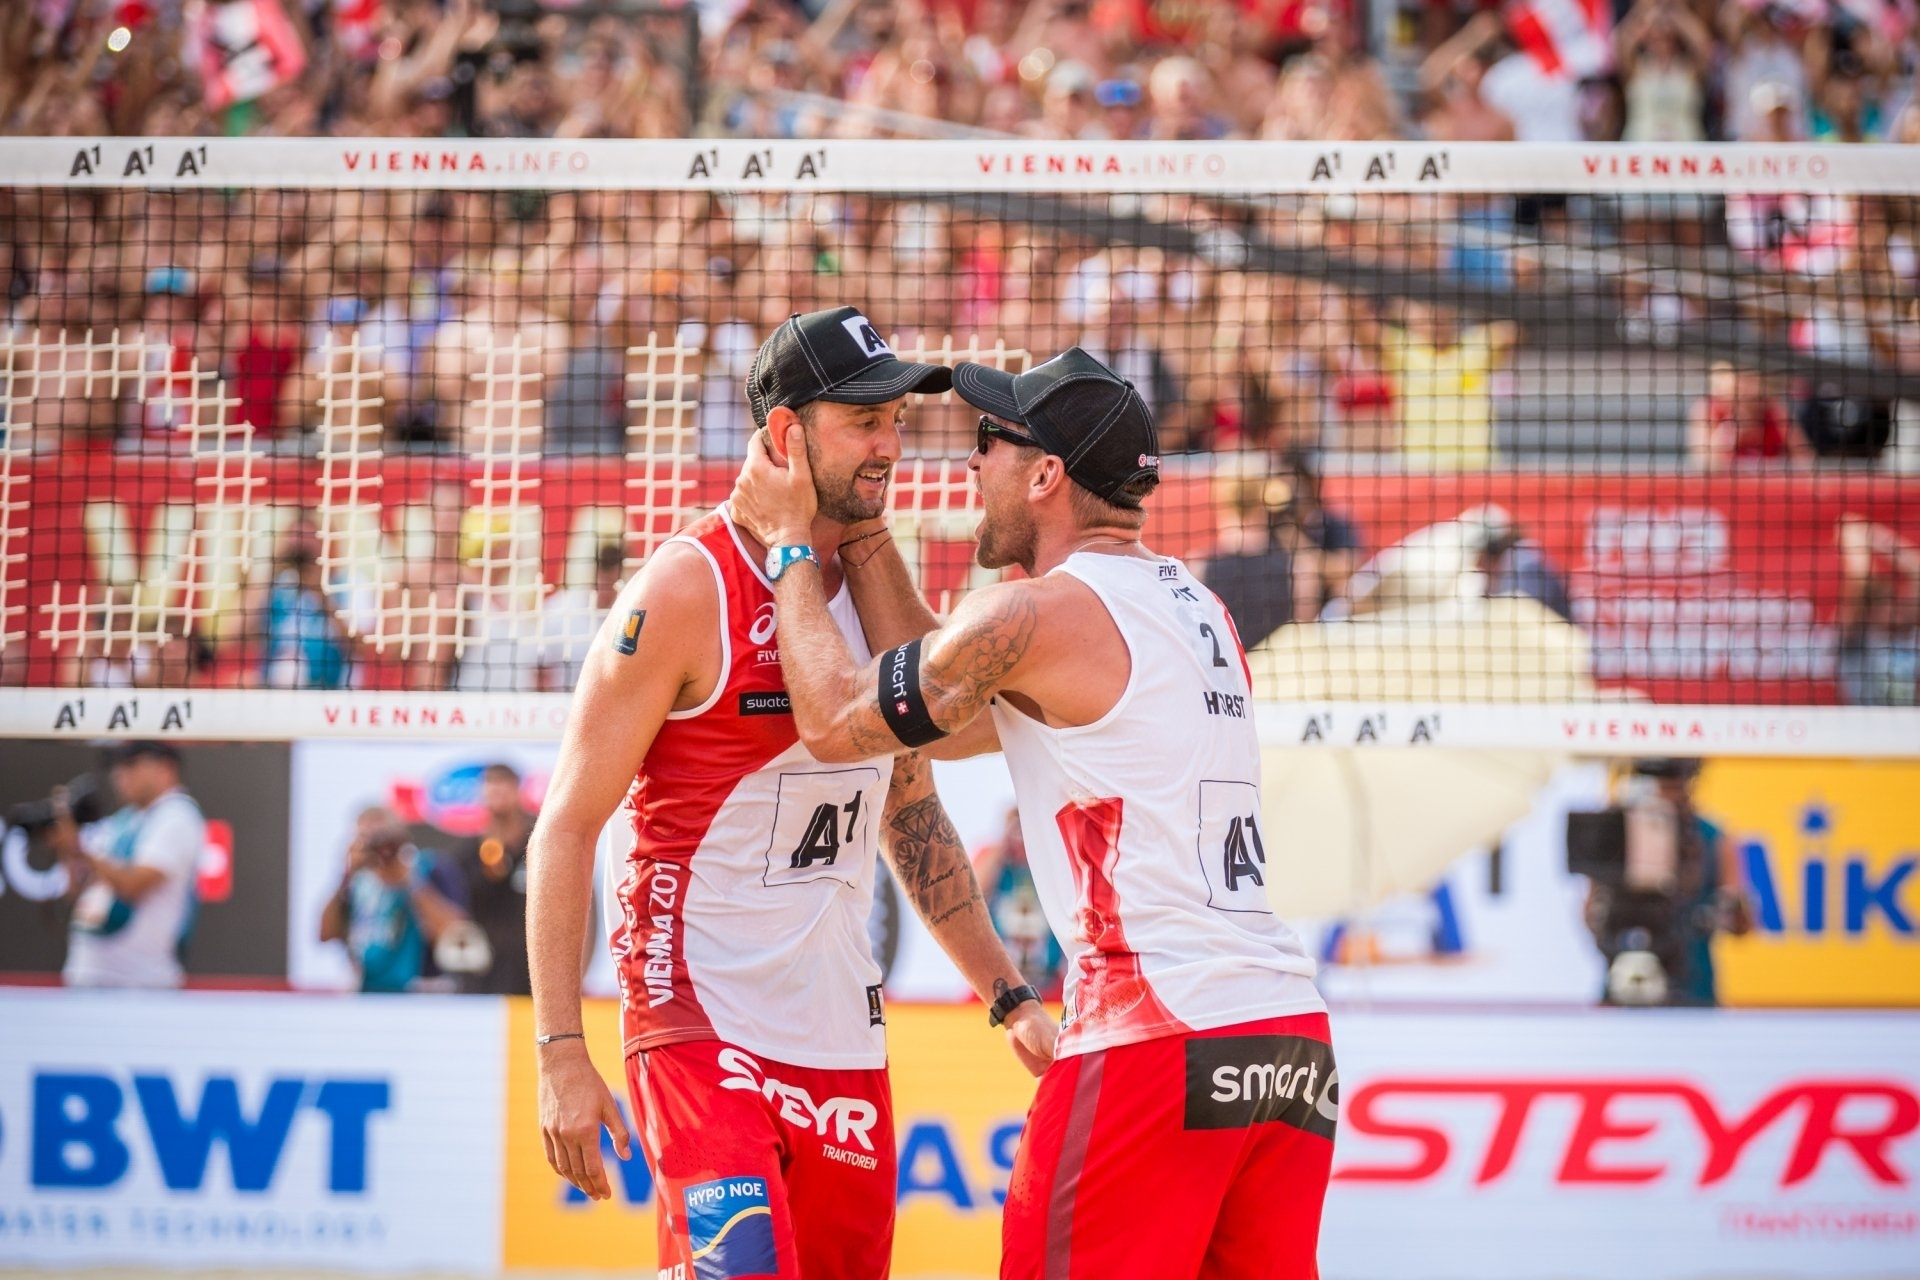 World Champ silver medalists Doppler/Horst are one Austrian team sticking together for the 2018 season